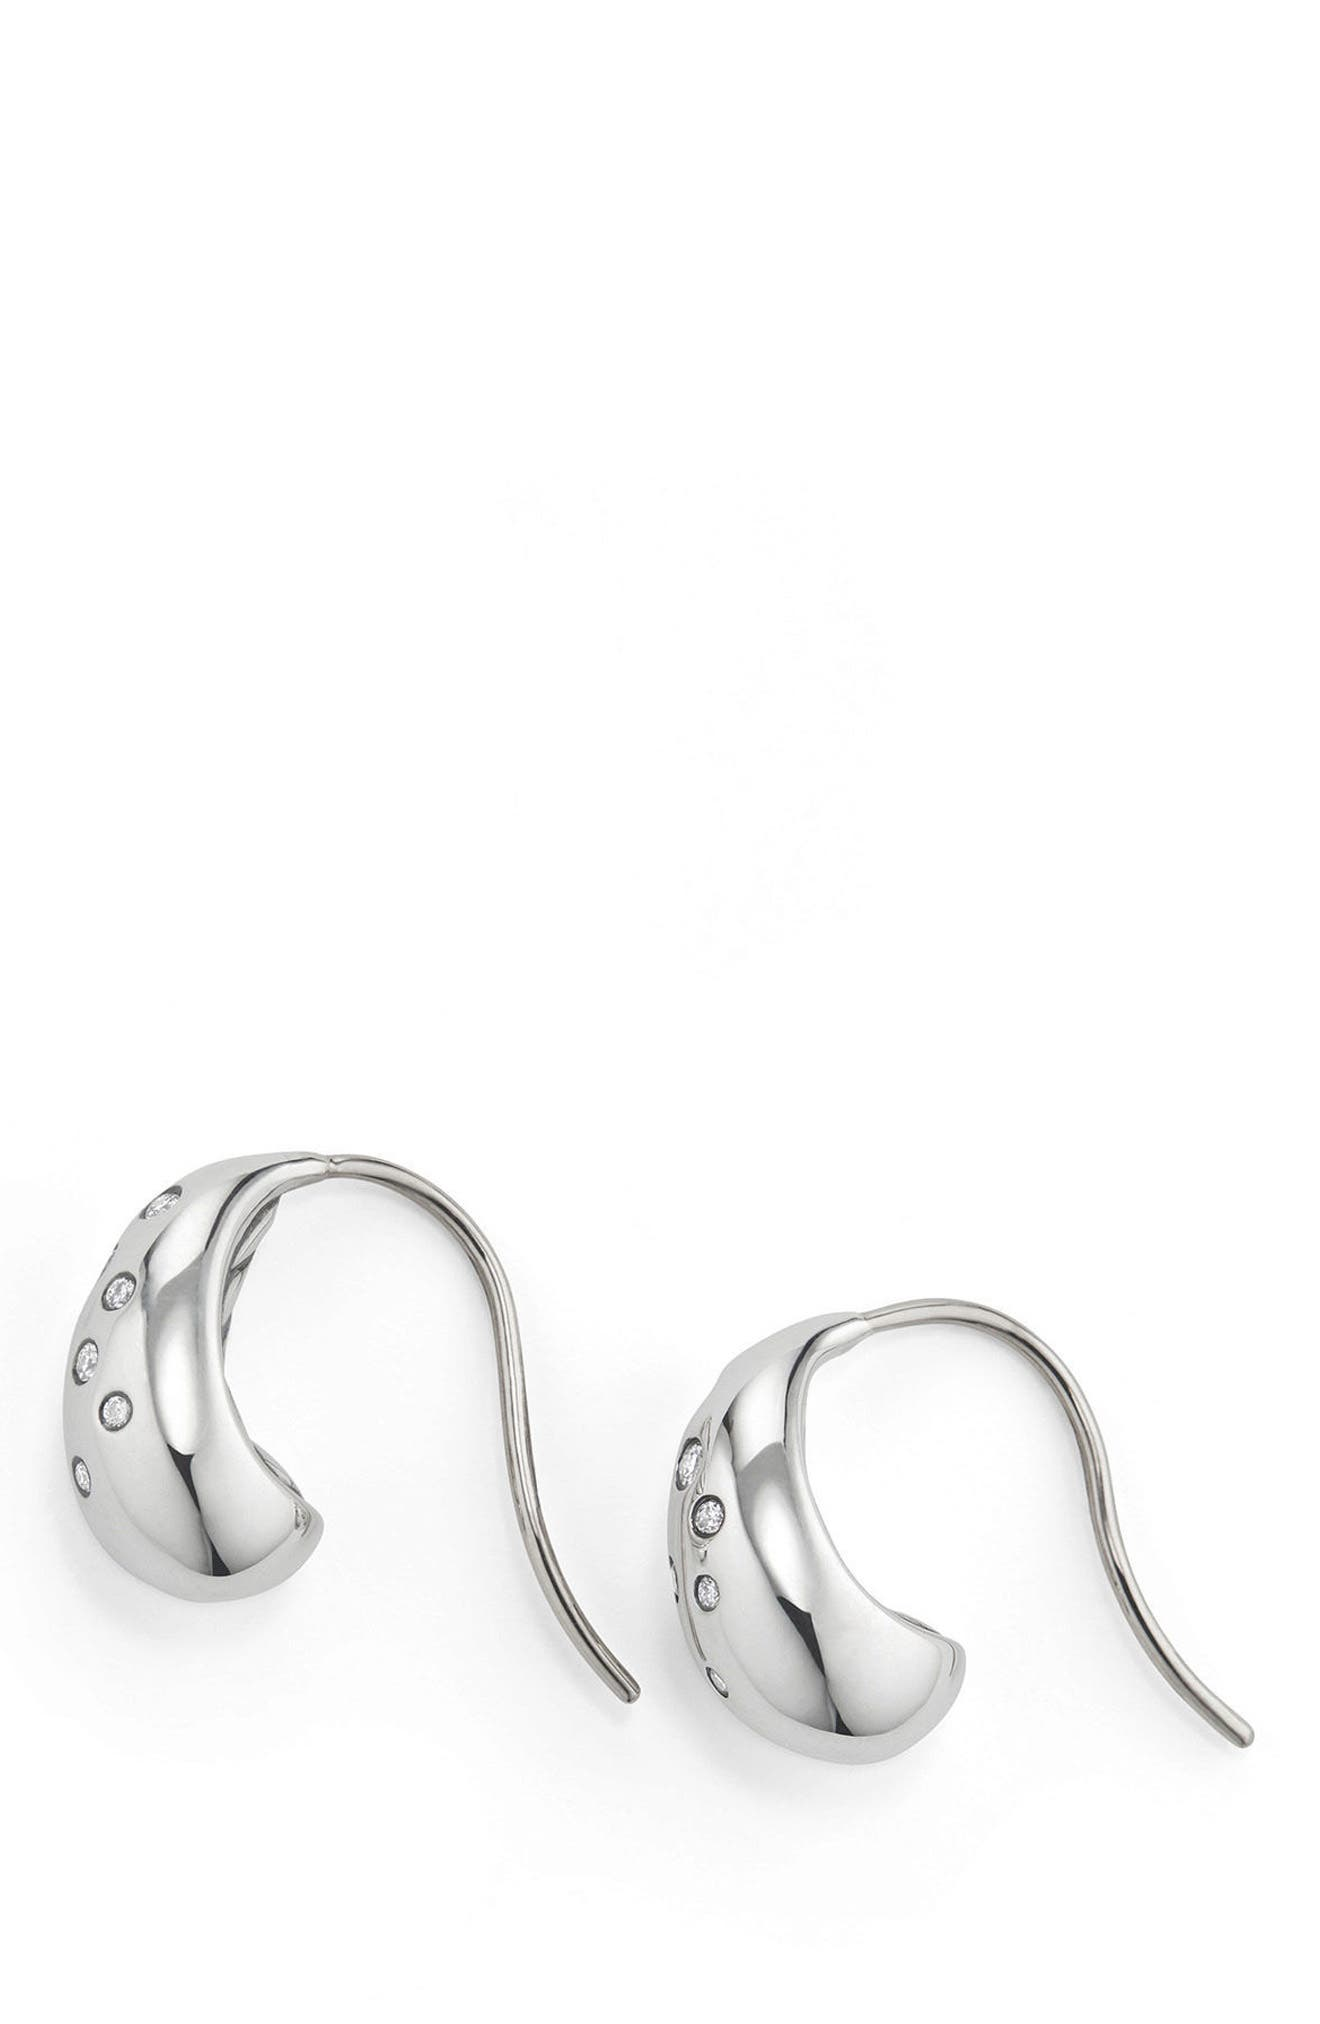 Pure Form Earrings with Diamonds, 15mm,                             Main thumbnail 1, color,                             Silver